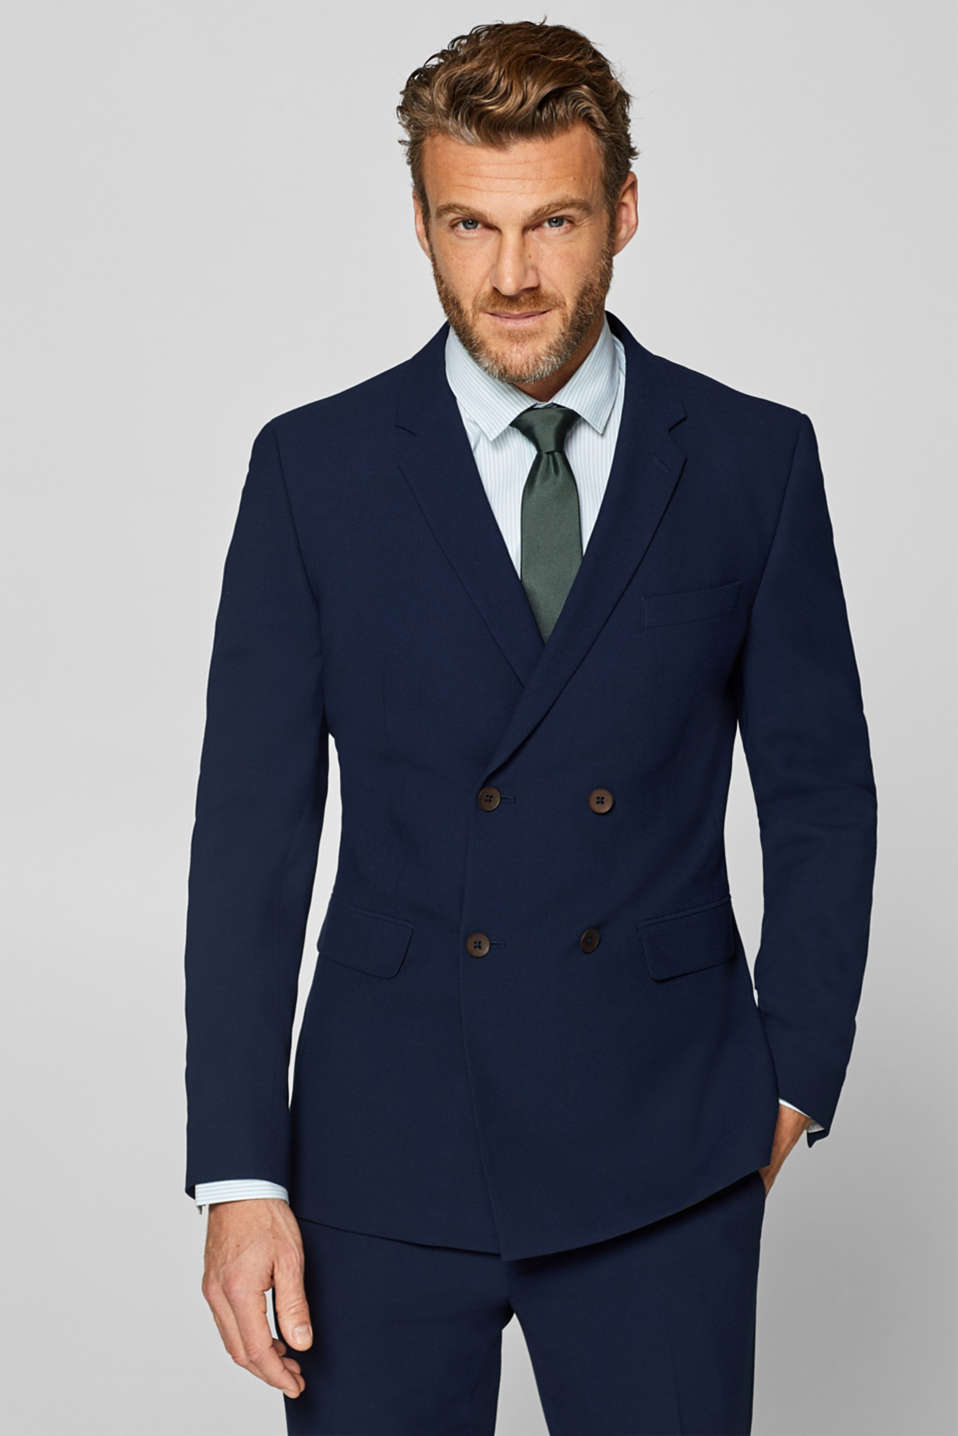 Esprit - ACTIVE SUIT mix + match: Double-breasted jacket